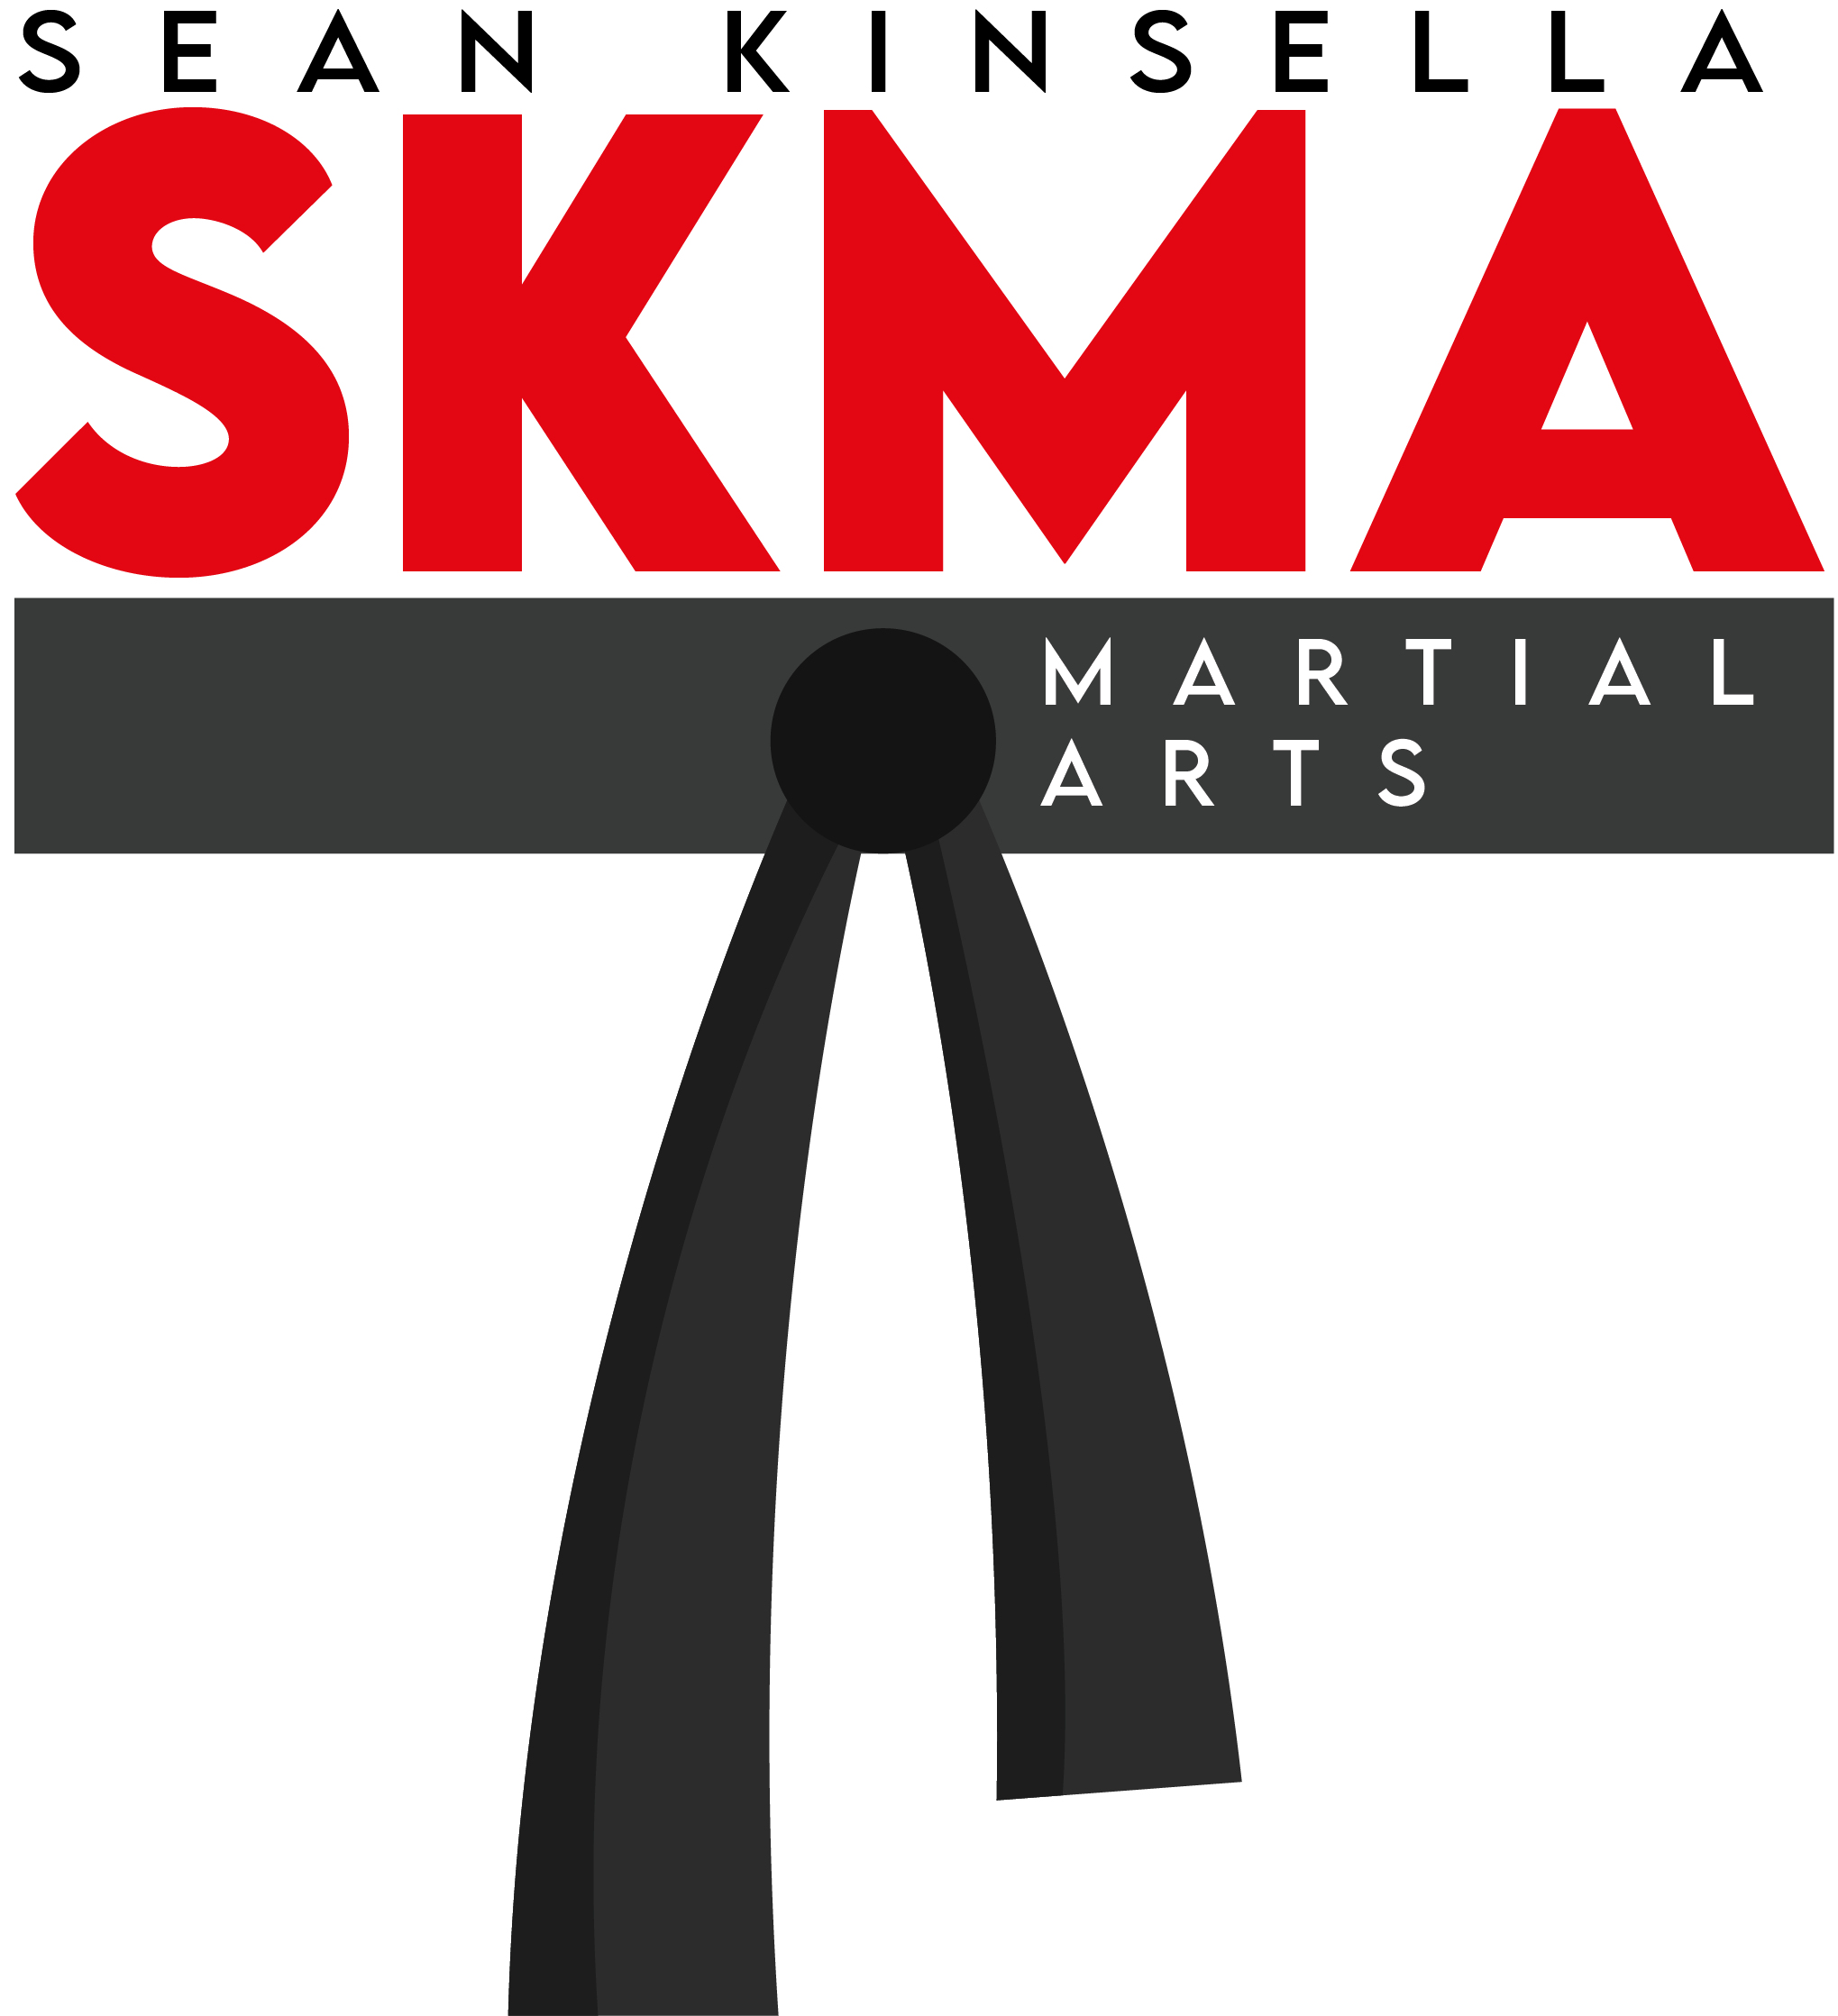 Sean Kinsella Martial Arts - Martial Arts Classes in Eastbourne